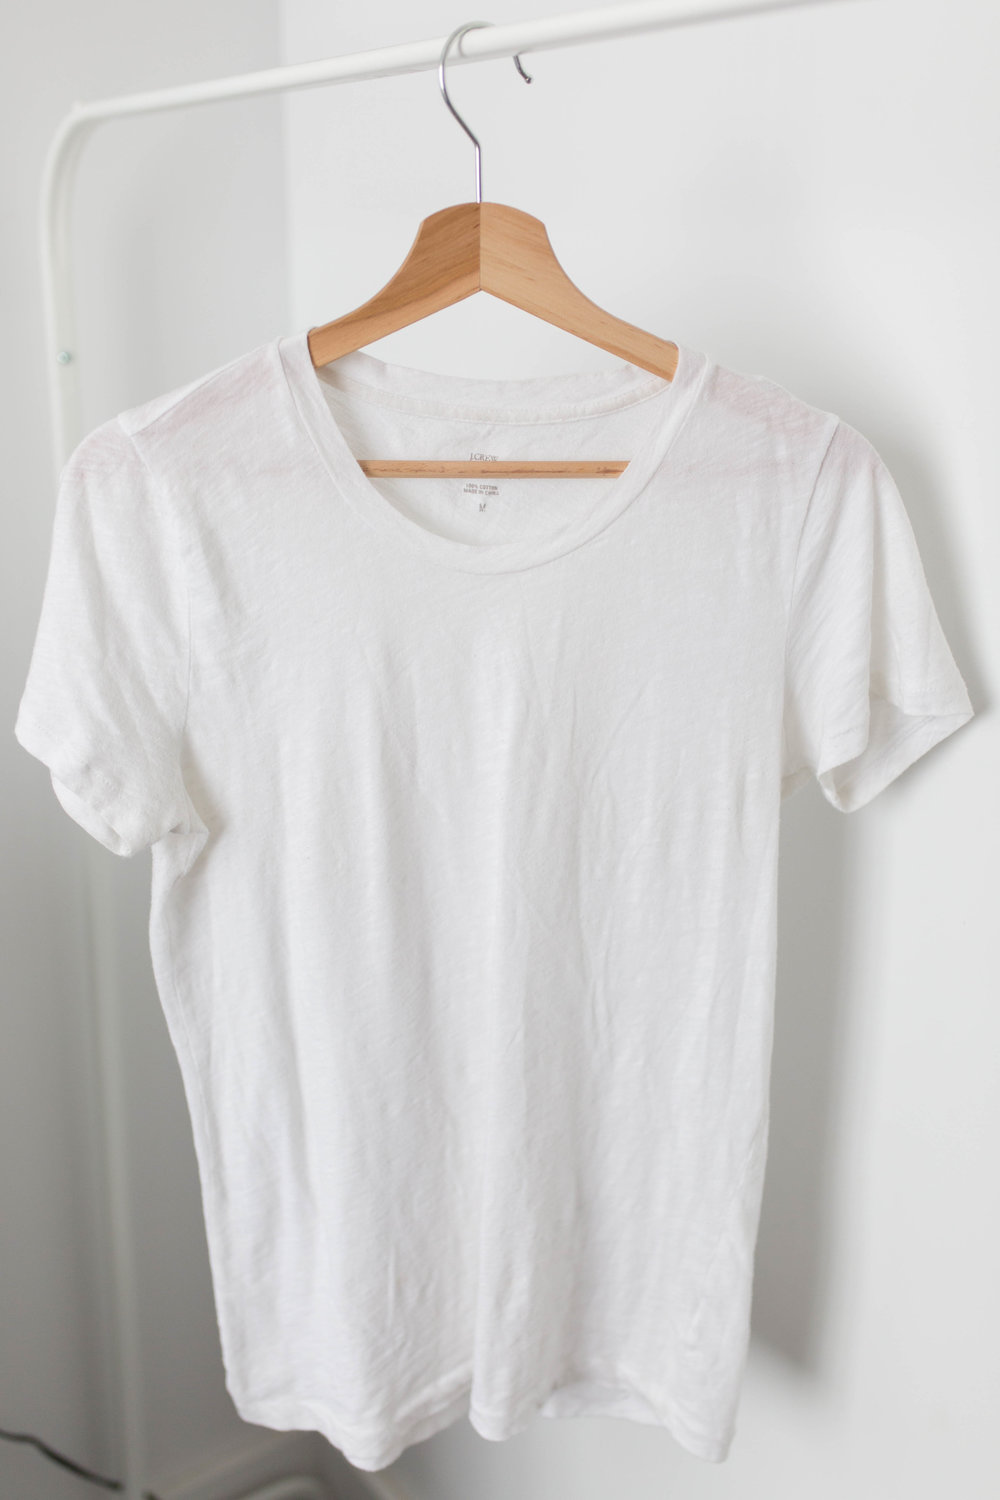 J.Crew Scoop Neck Tee